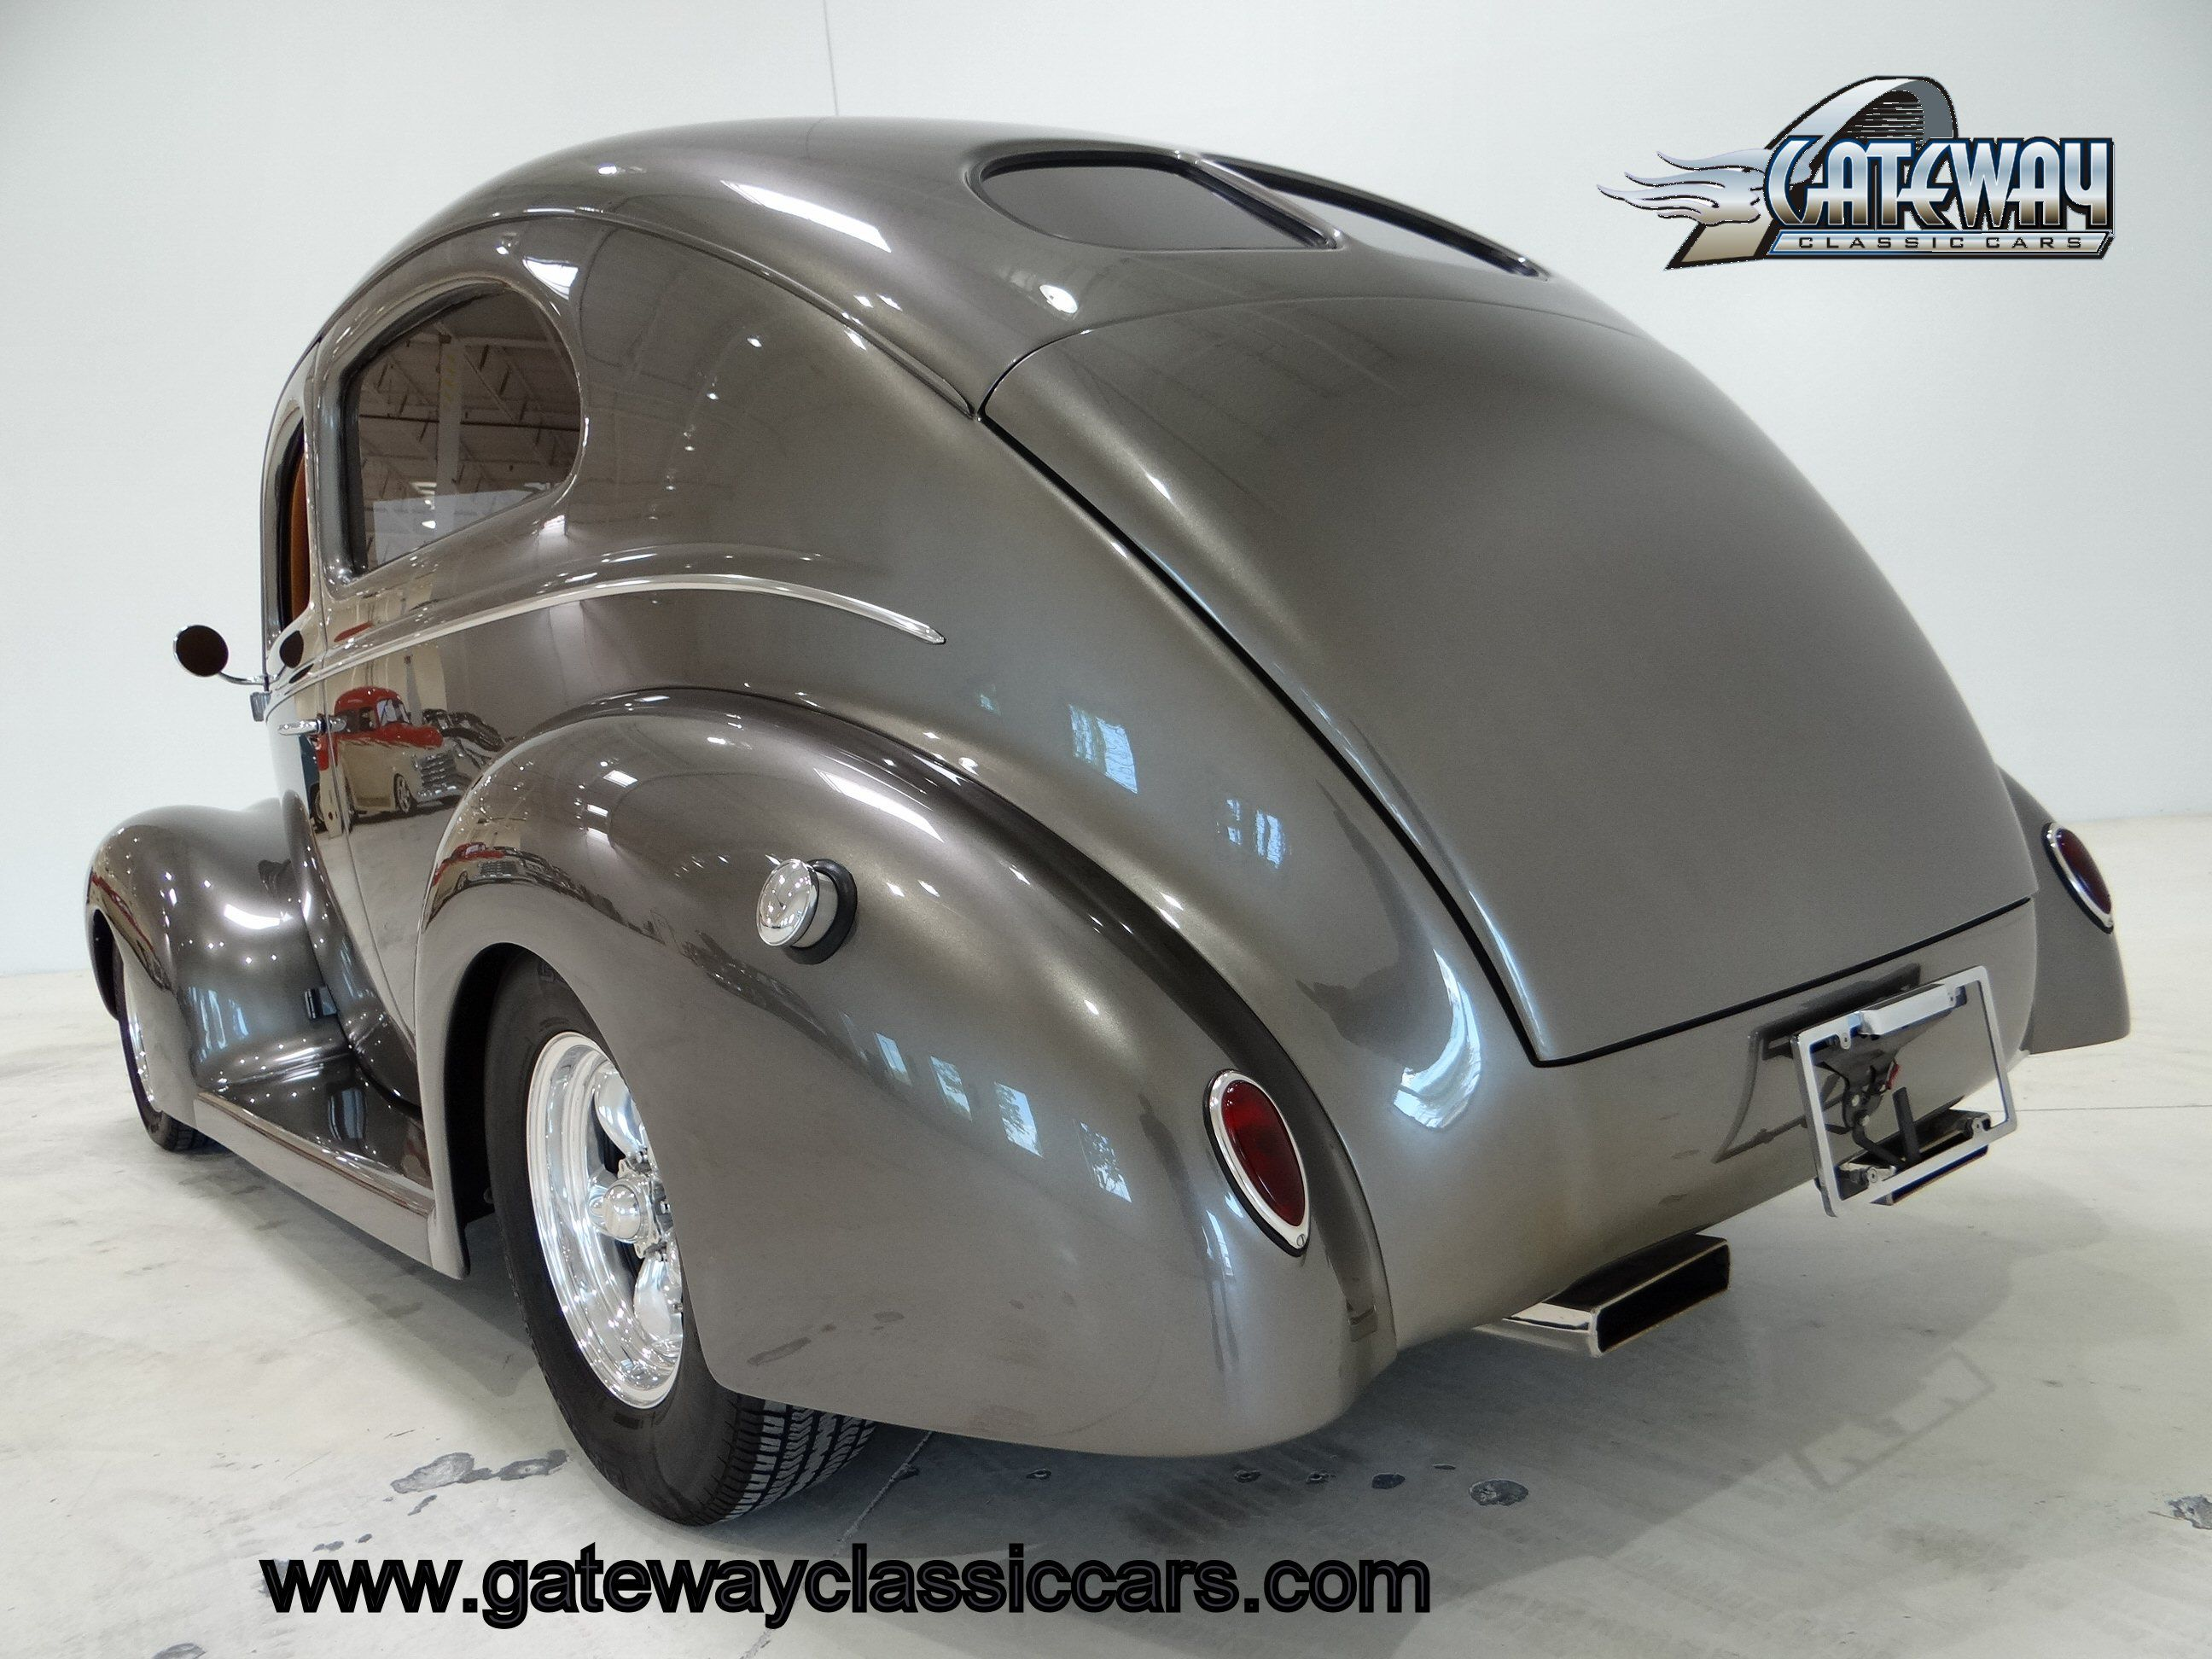 Gateway Classic Cars - classic cars for sale, muscle cars for sale ...